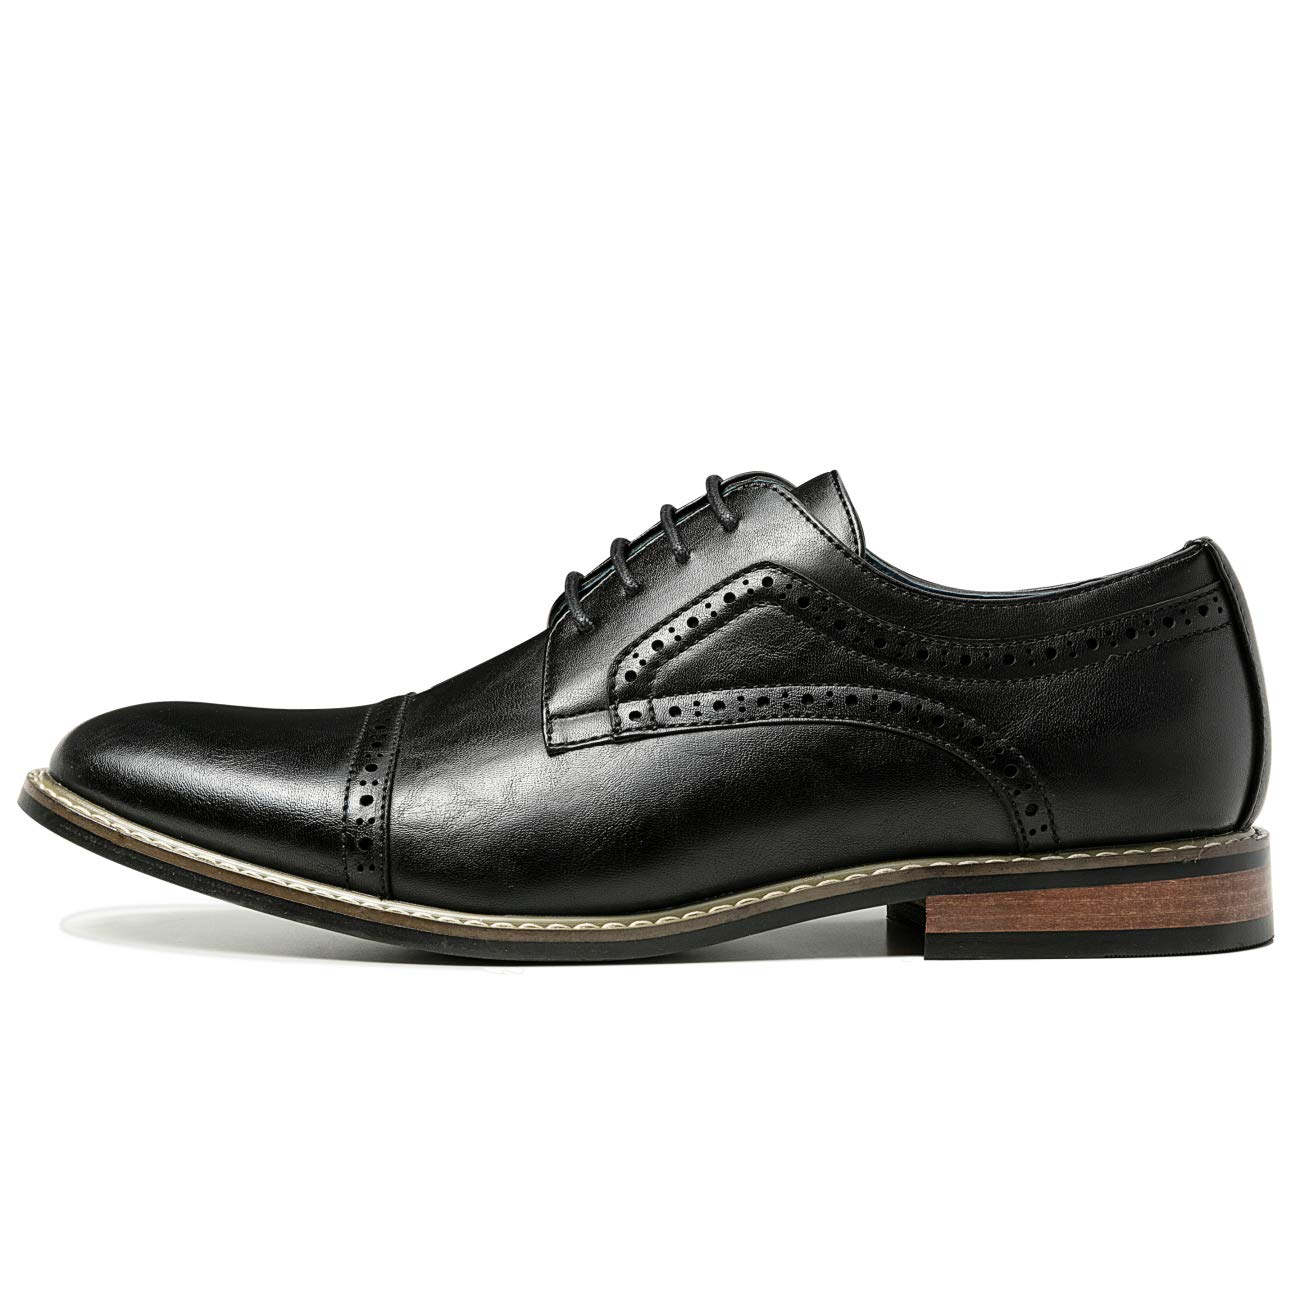 bca9c590365a ZRIANG Men's Classic Cap Toe Lace-up Oxford Dress Shoes